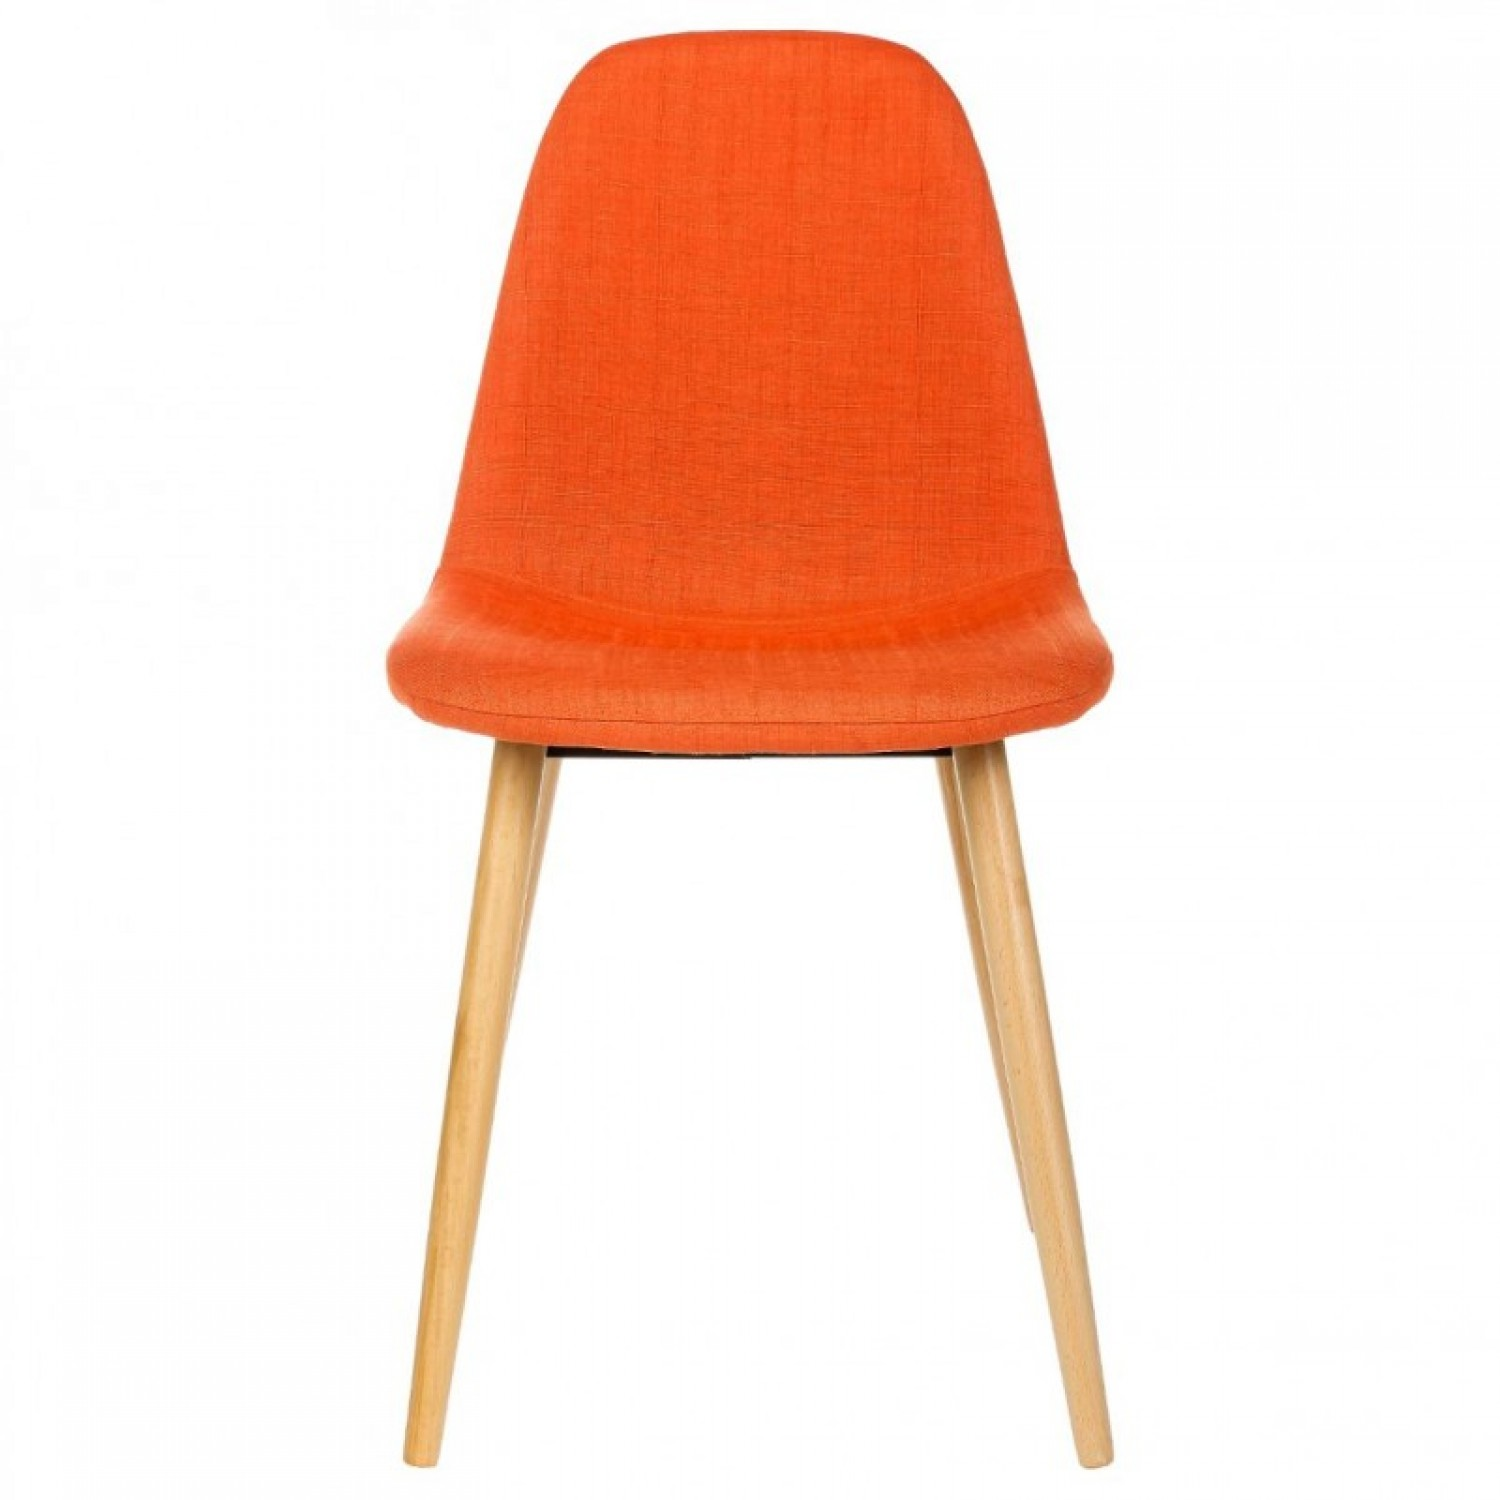 Chaise Scandinave Orange Fauteuil Style Scandinave Pas Cher Infini Photo